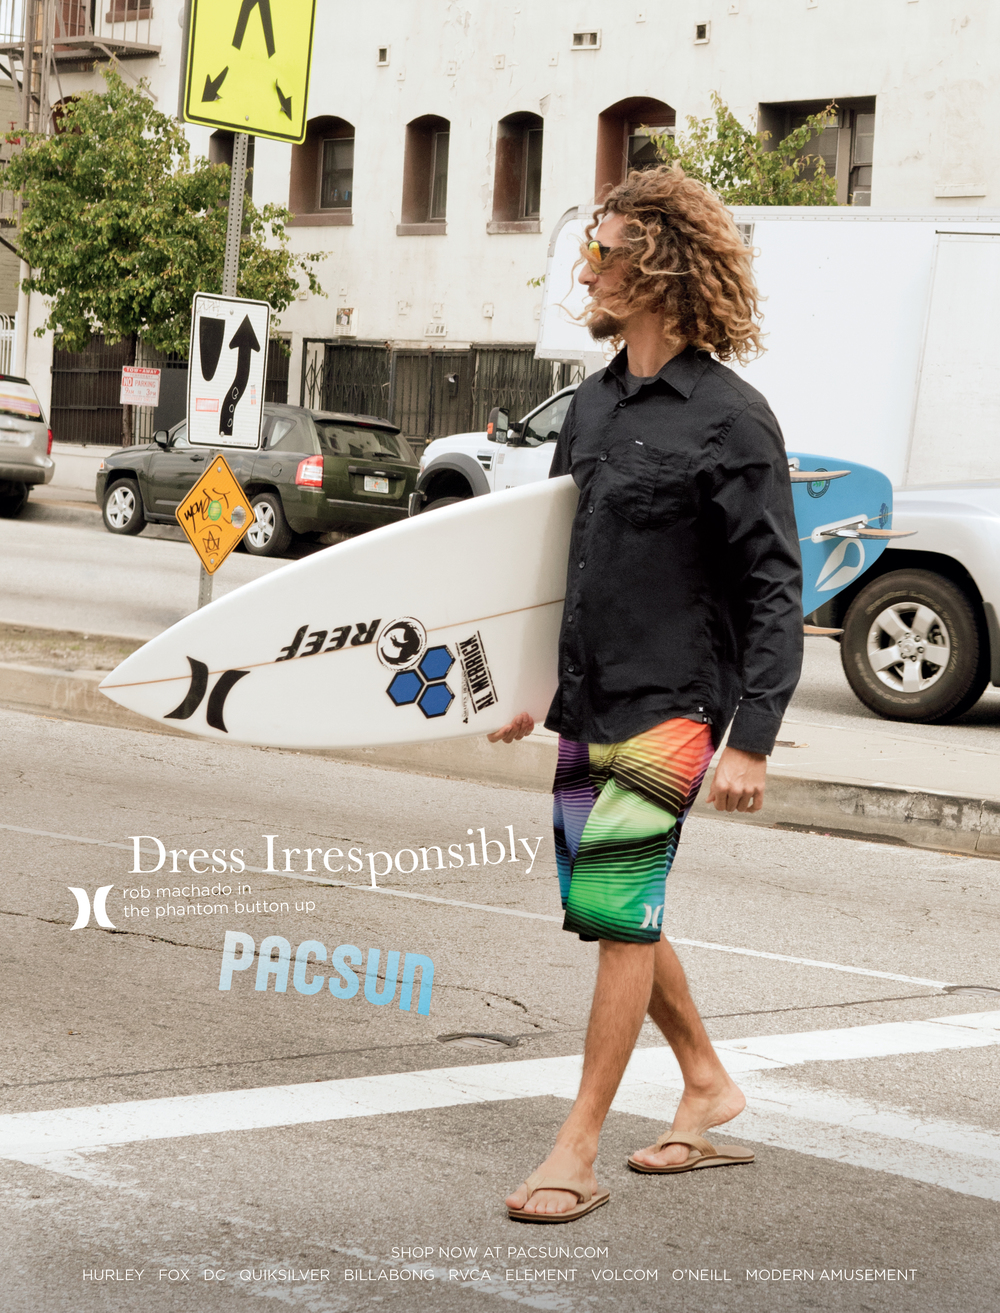 984_PacSun_RobCrosswalk_SURFING_September_SP_051811_X1A.jpg